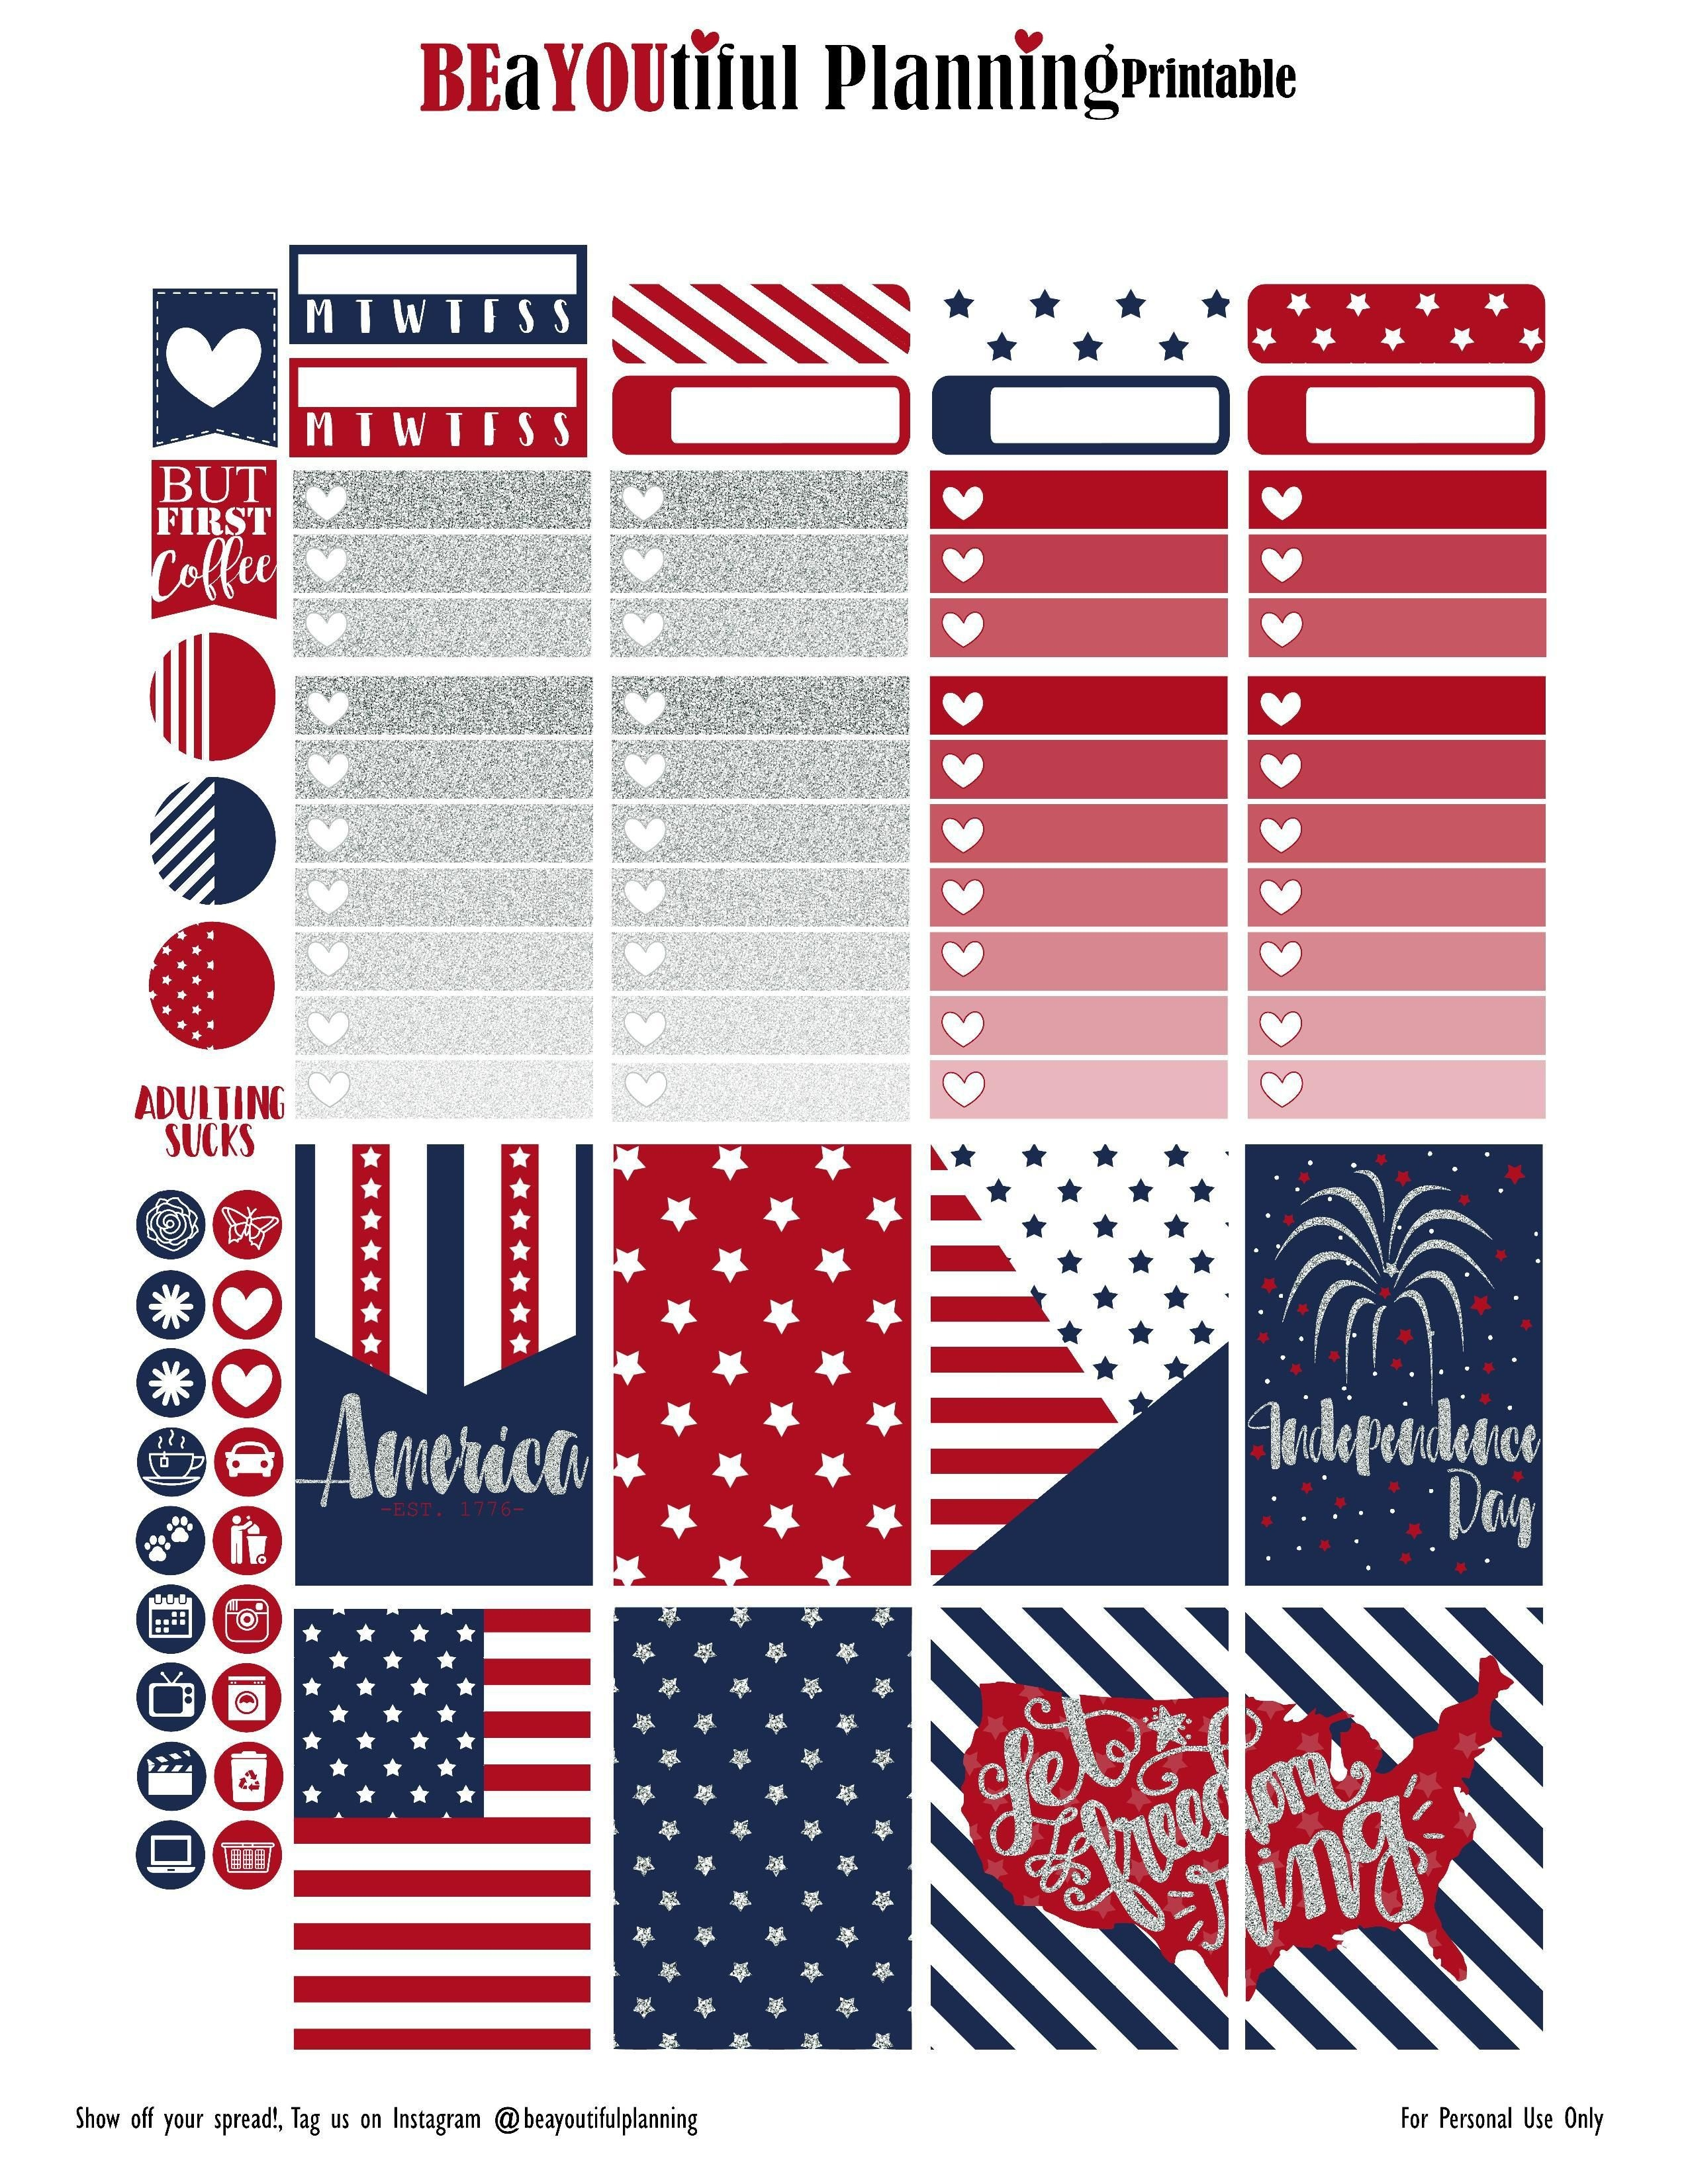 4Th Of July – Free Printable   Planners & Bullet Journals   Create - Free Printable 4Th Of July Pictures